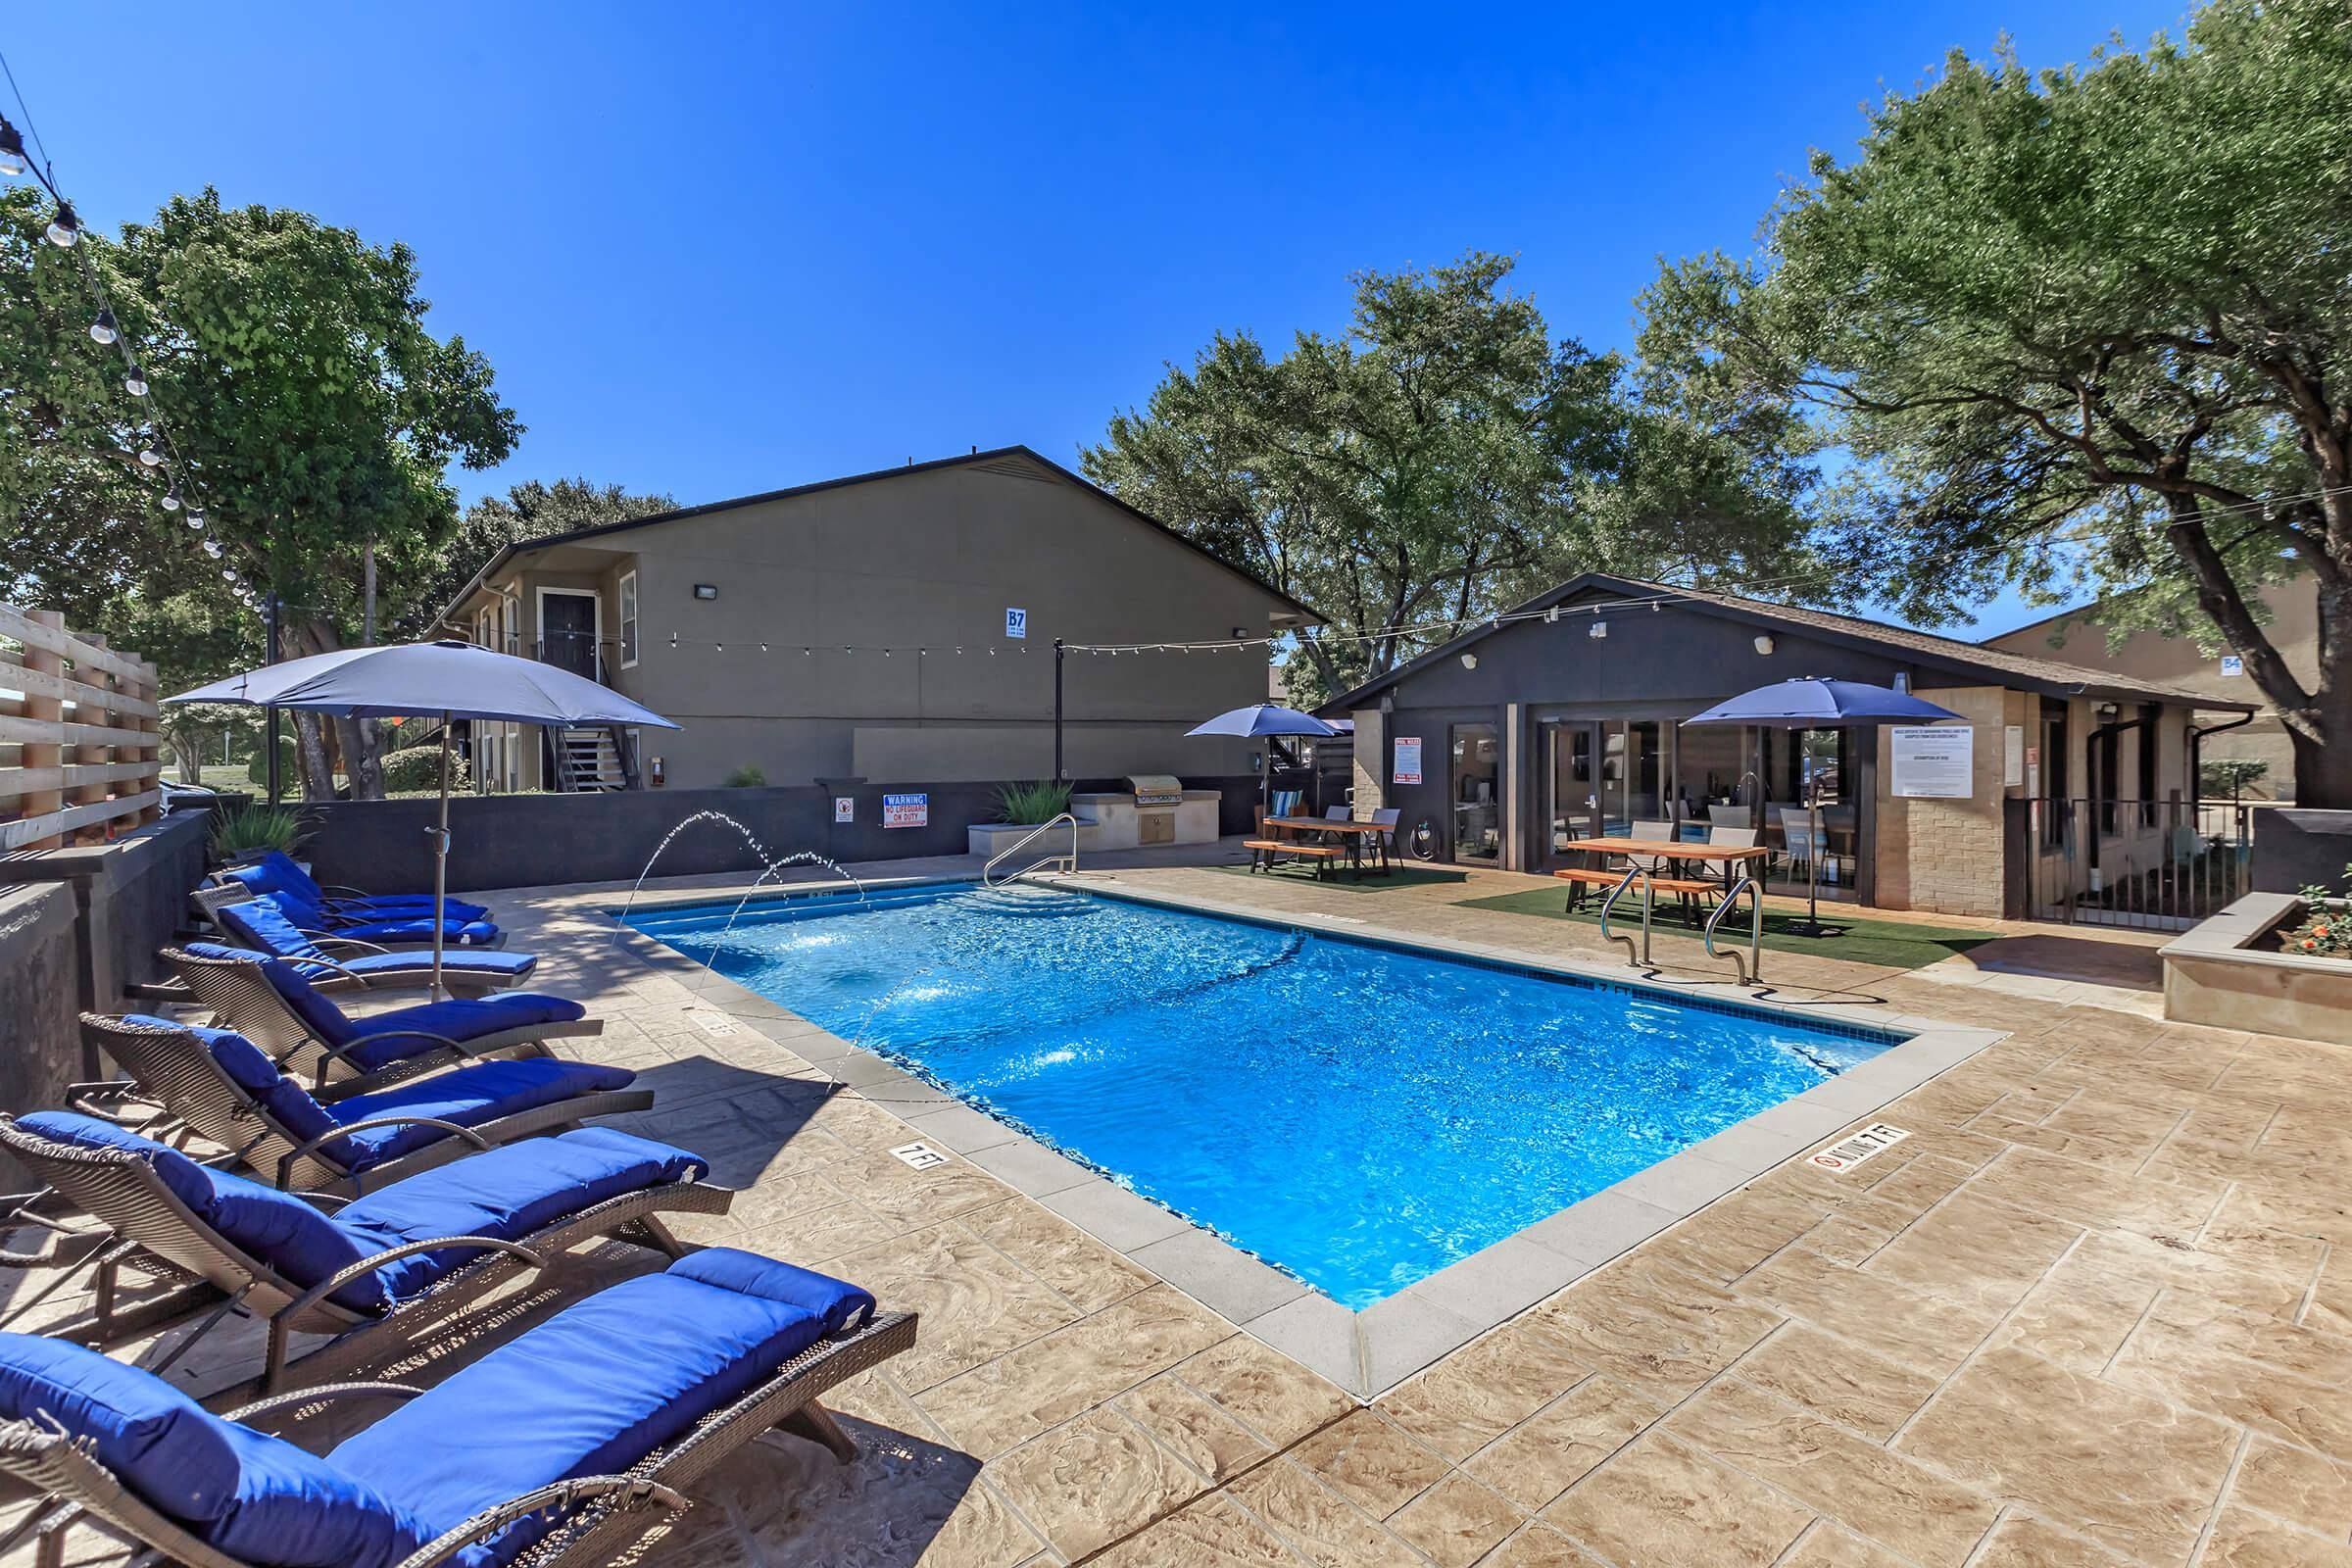 APARTMENTS FOR RENT IN NEW BRAUNFELS, TEXAS